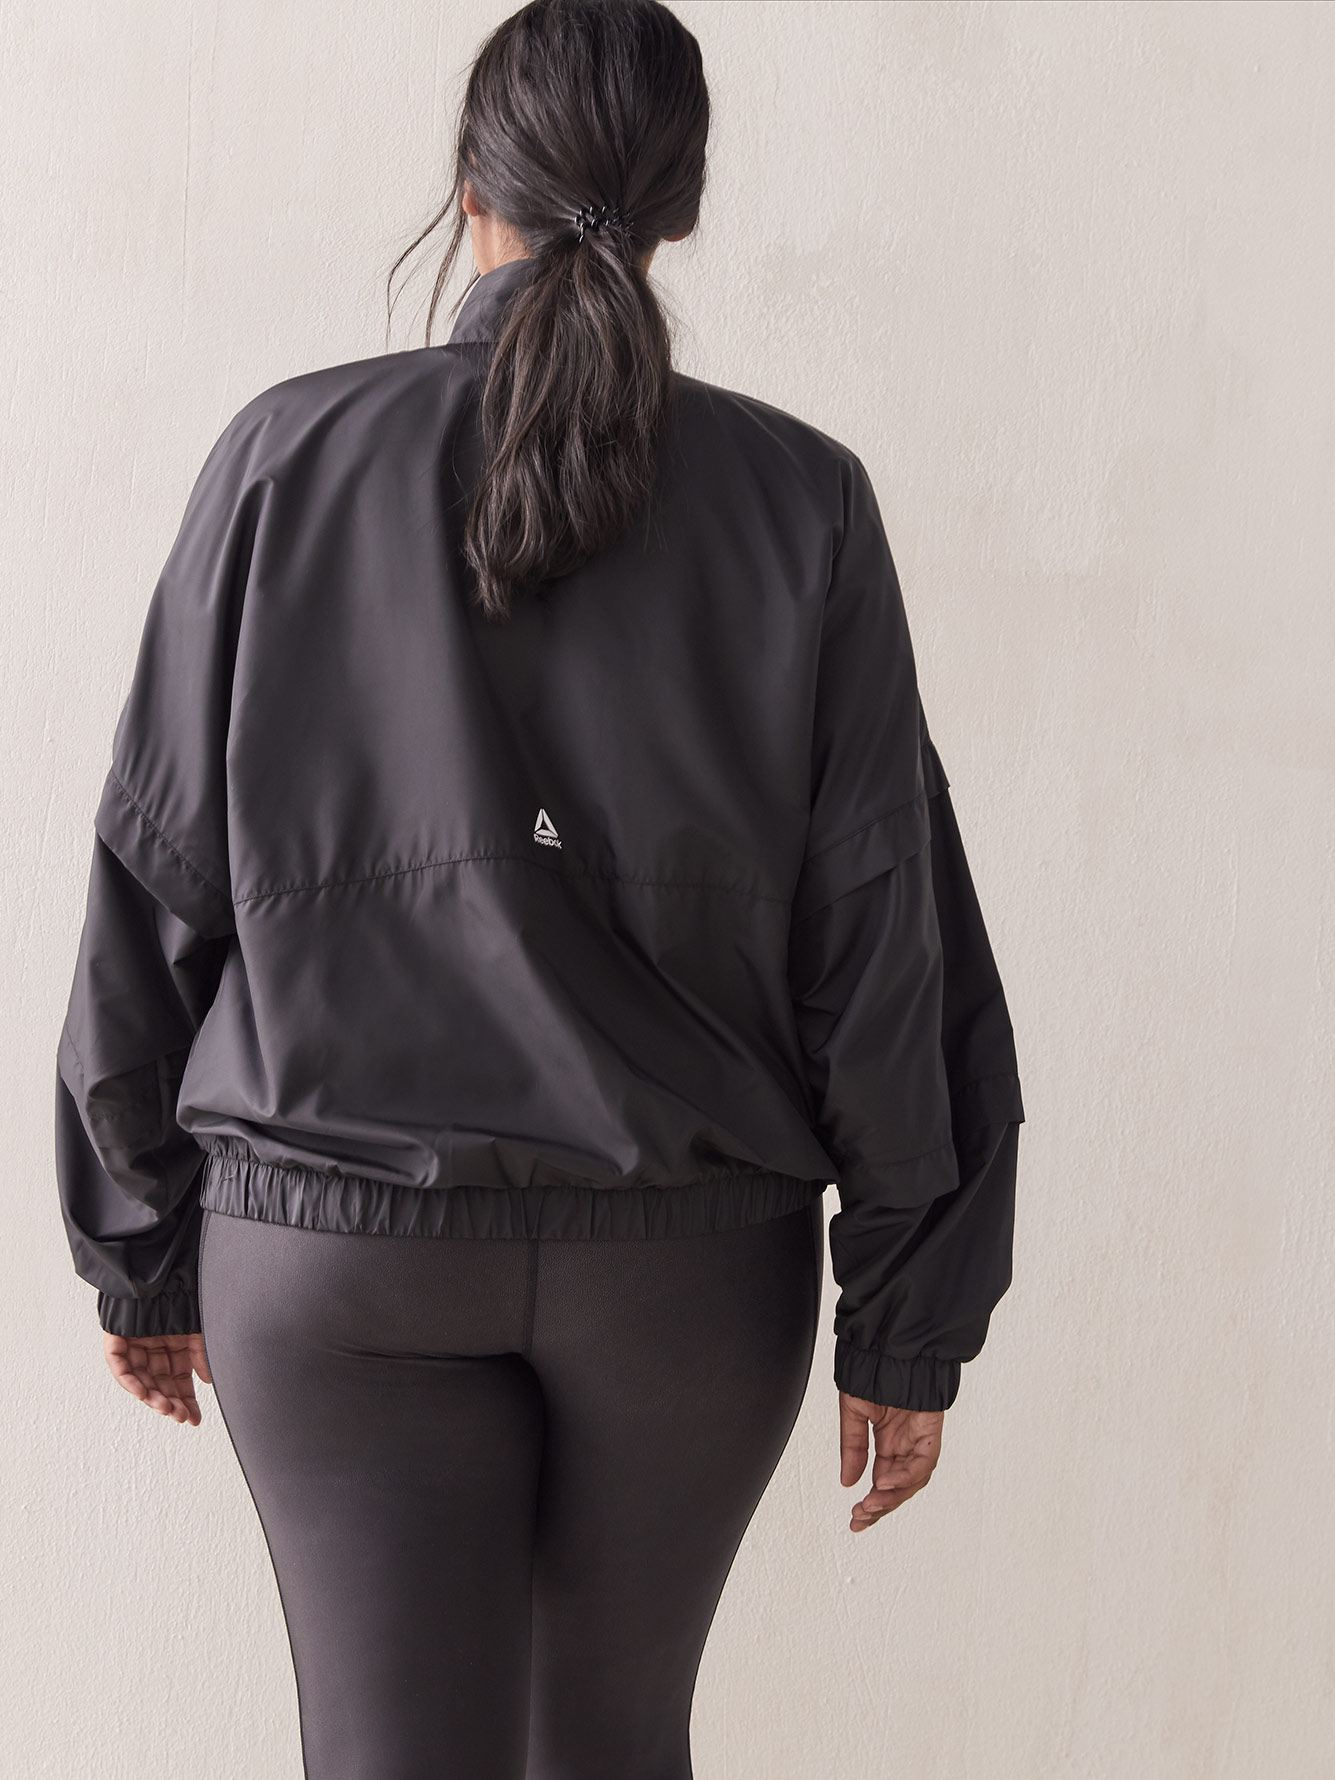 MYT Light Black Jacket - Reebok